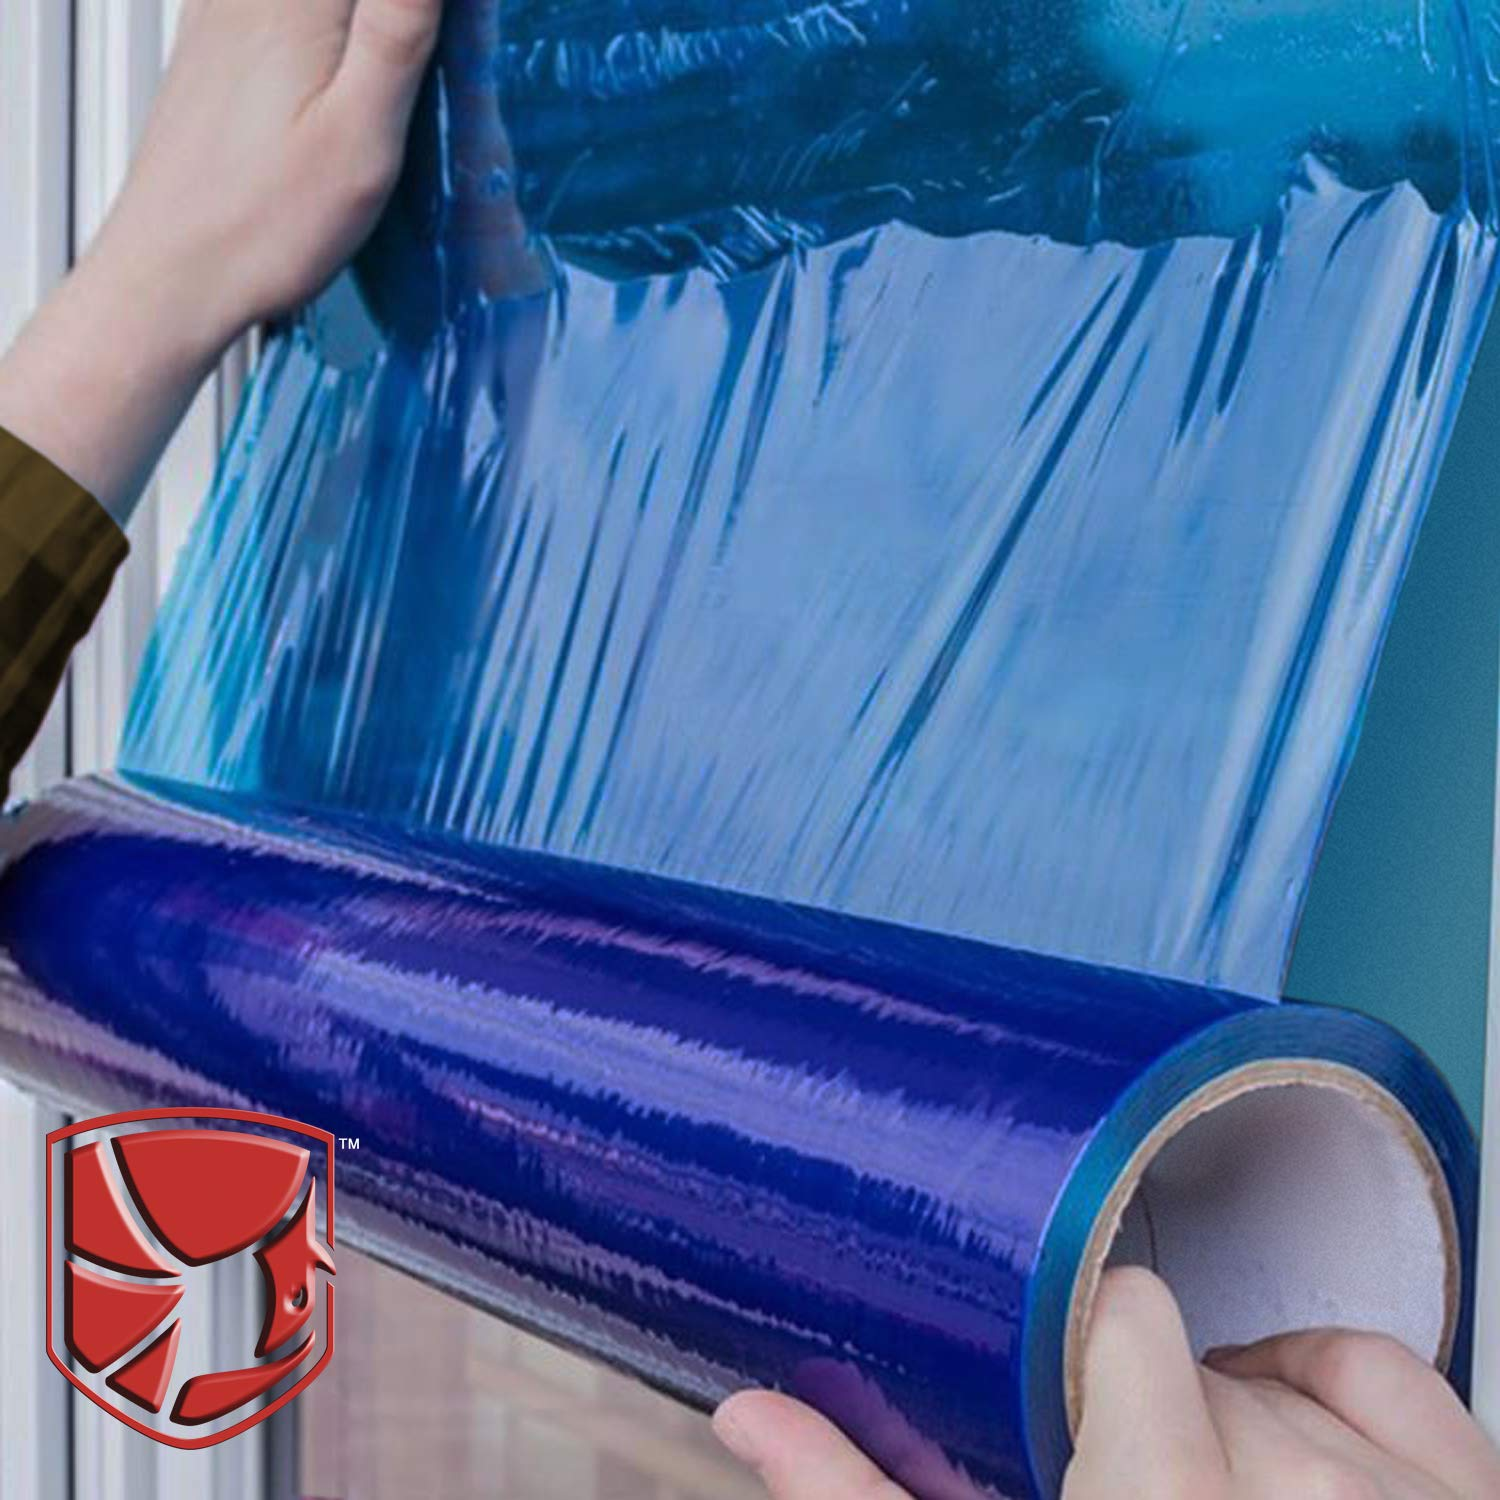 "Protective Film for Window Glass, Blue Window Shield Adhesive Film, Window Masking Film with 45 Day UV Protection. 21""x 600 feet Poly Window Protection Film with Utility Knife."